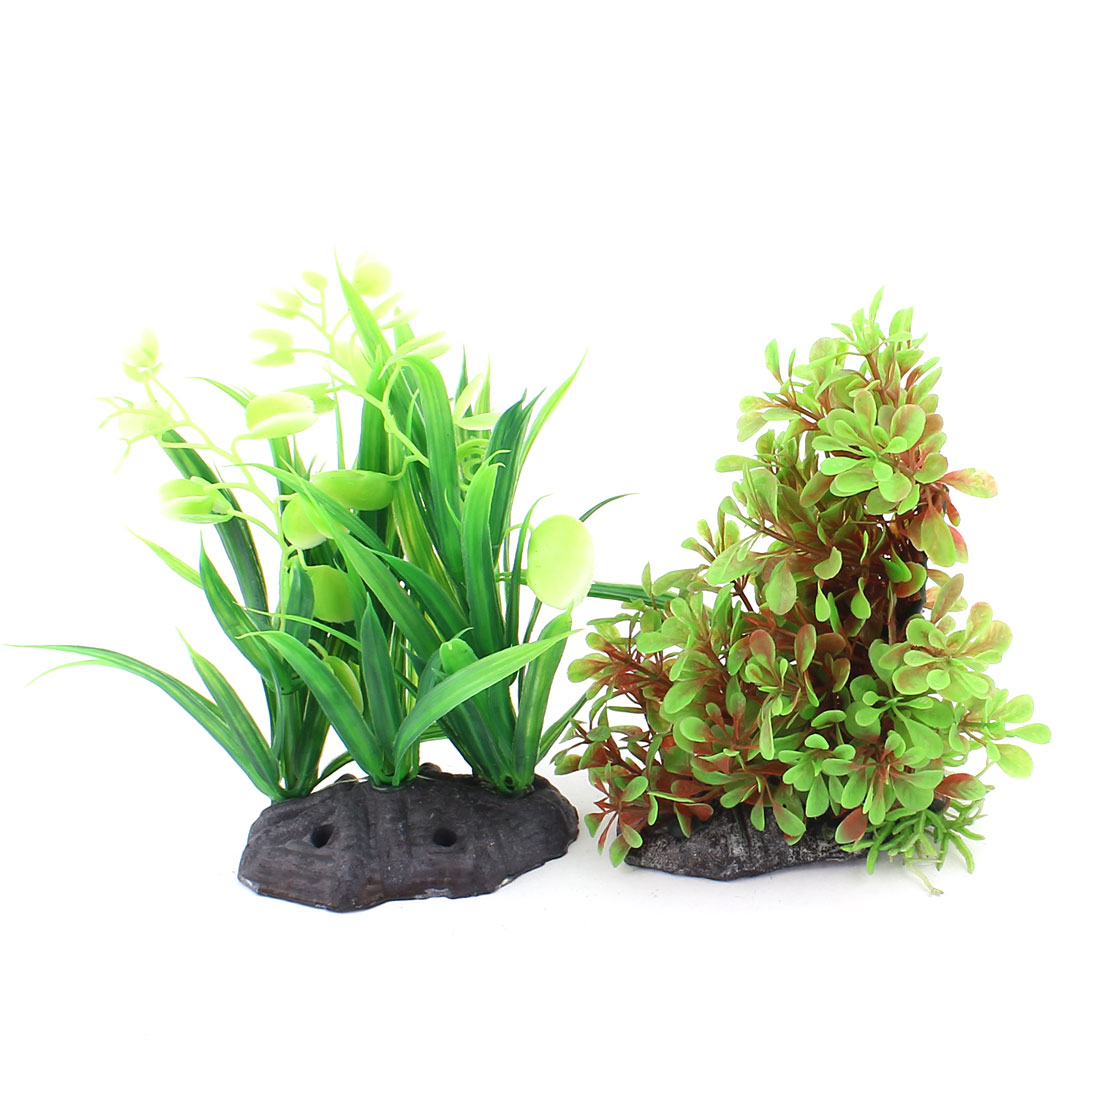 Plastic Aquascaping Underwater Plant Grass Aquarium Decor 2pcs